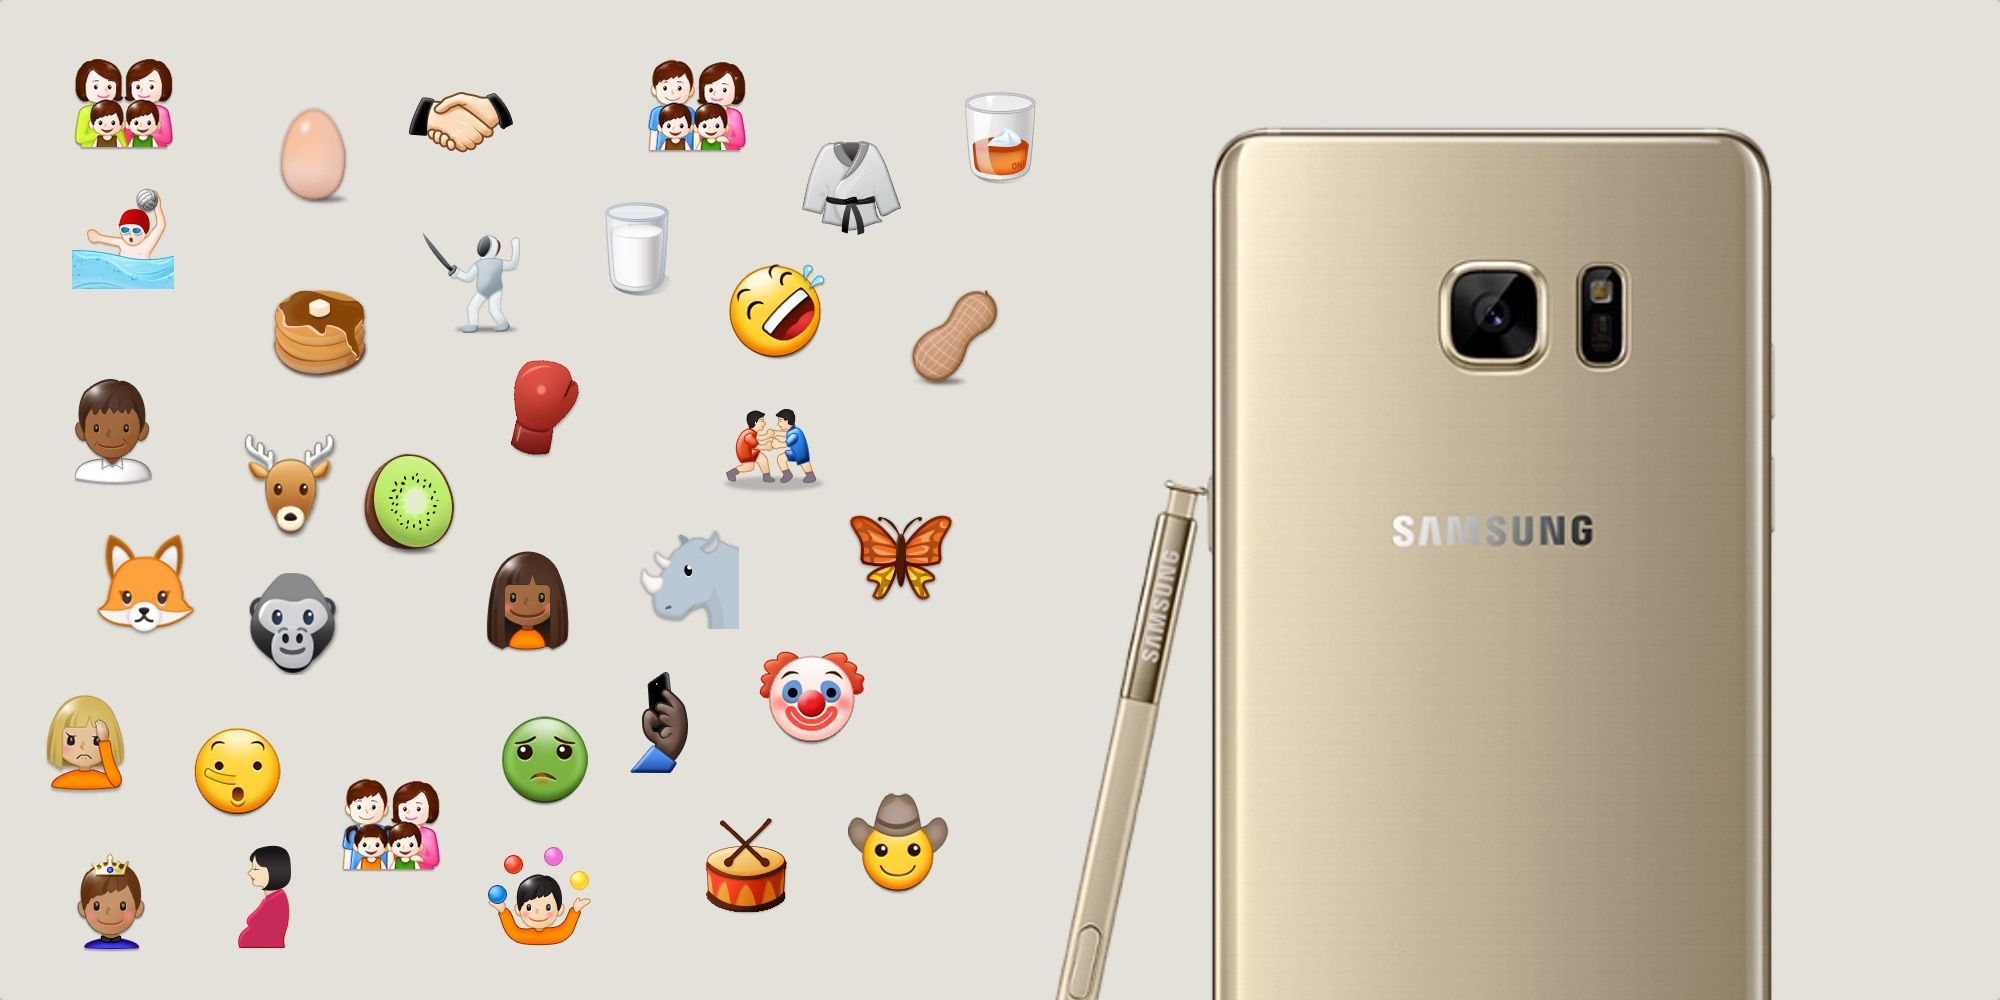 Samsung's Biggest Ever Emoji Update